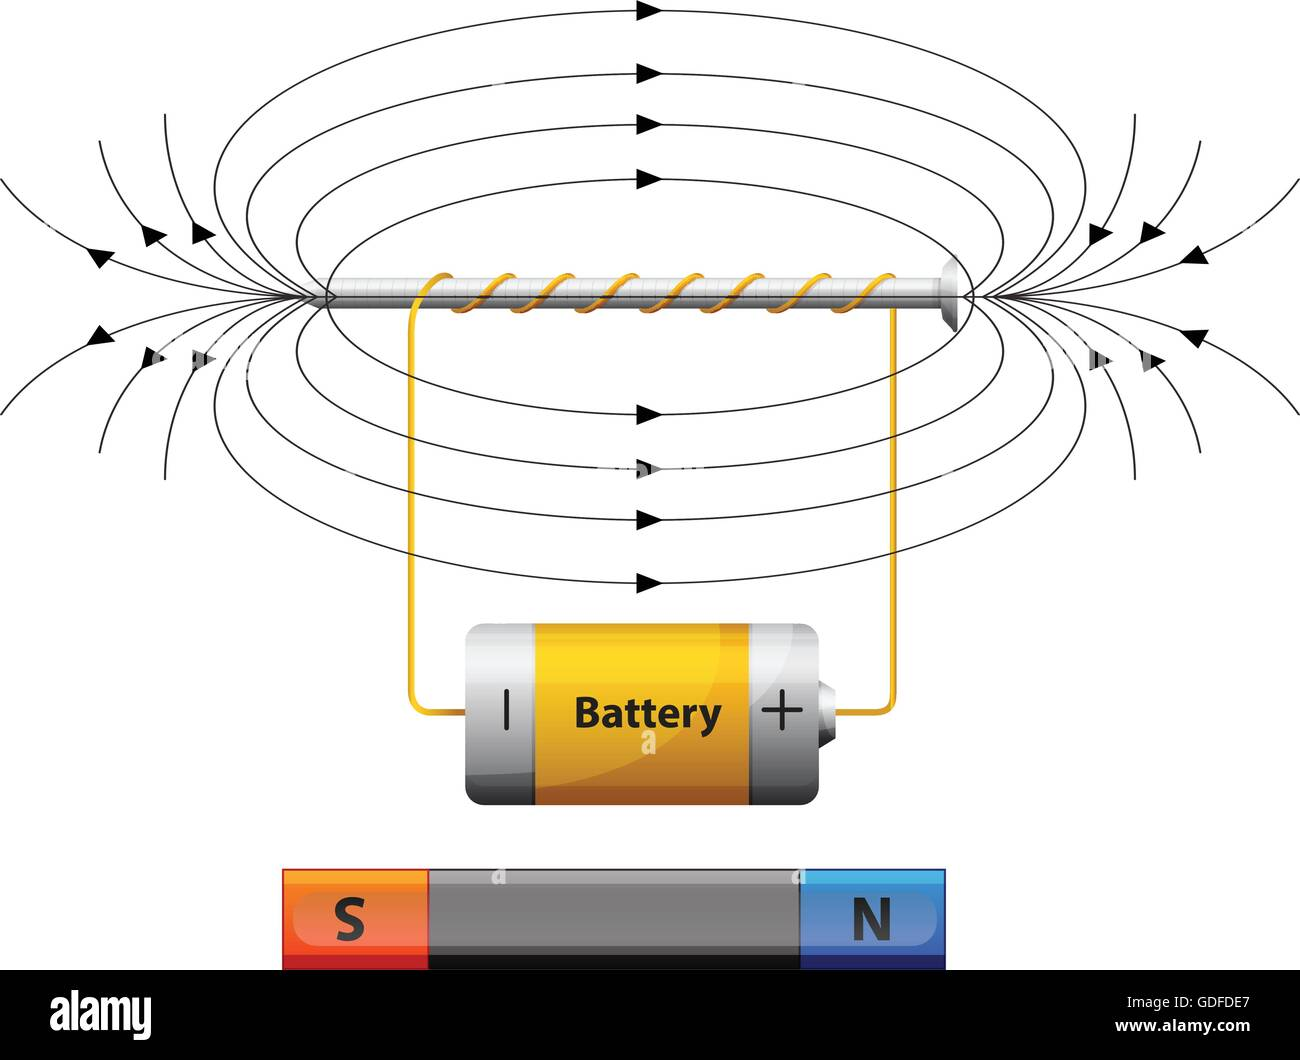 Diagram showing magnetic field with battery illustration stock diagram showing magnetic field with battery illustration ccuart Images